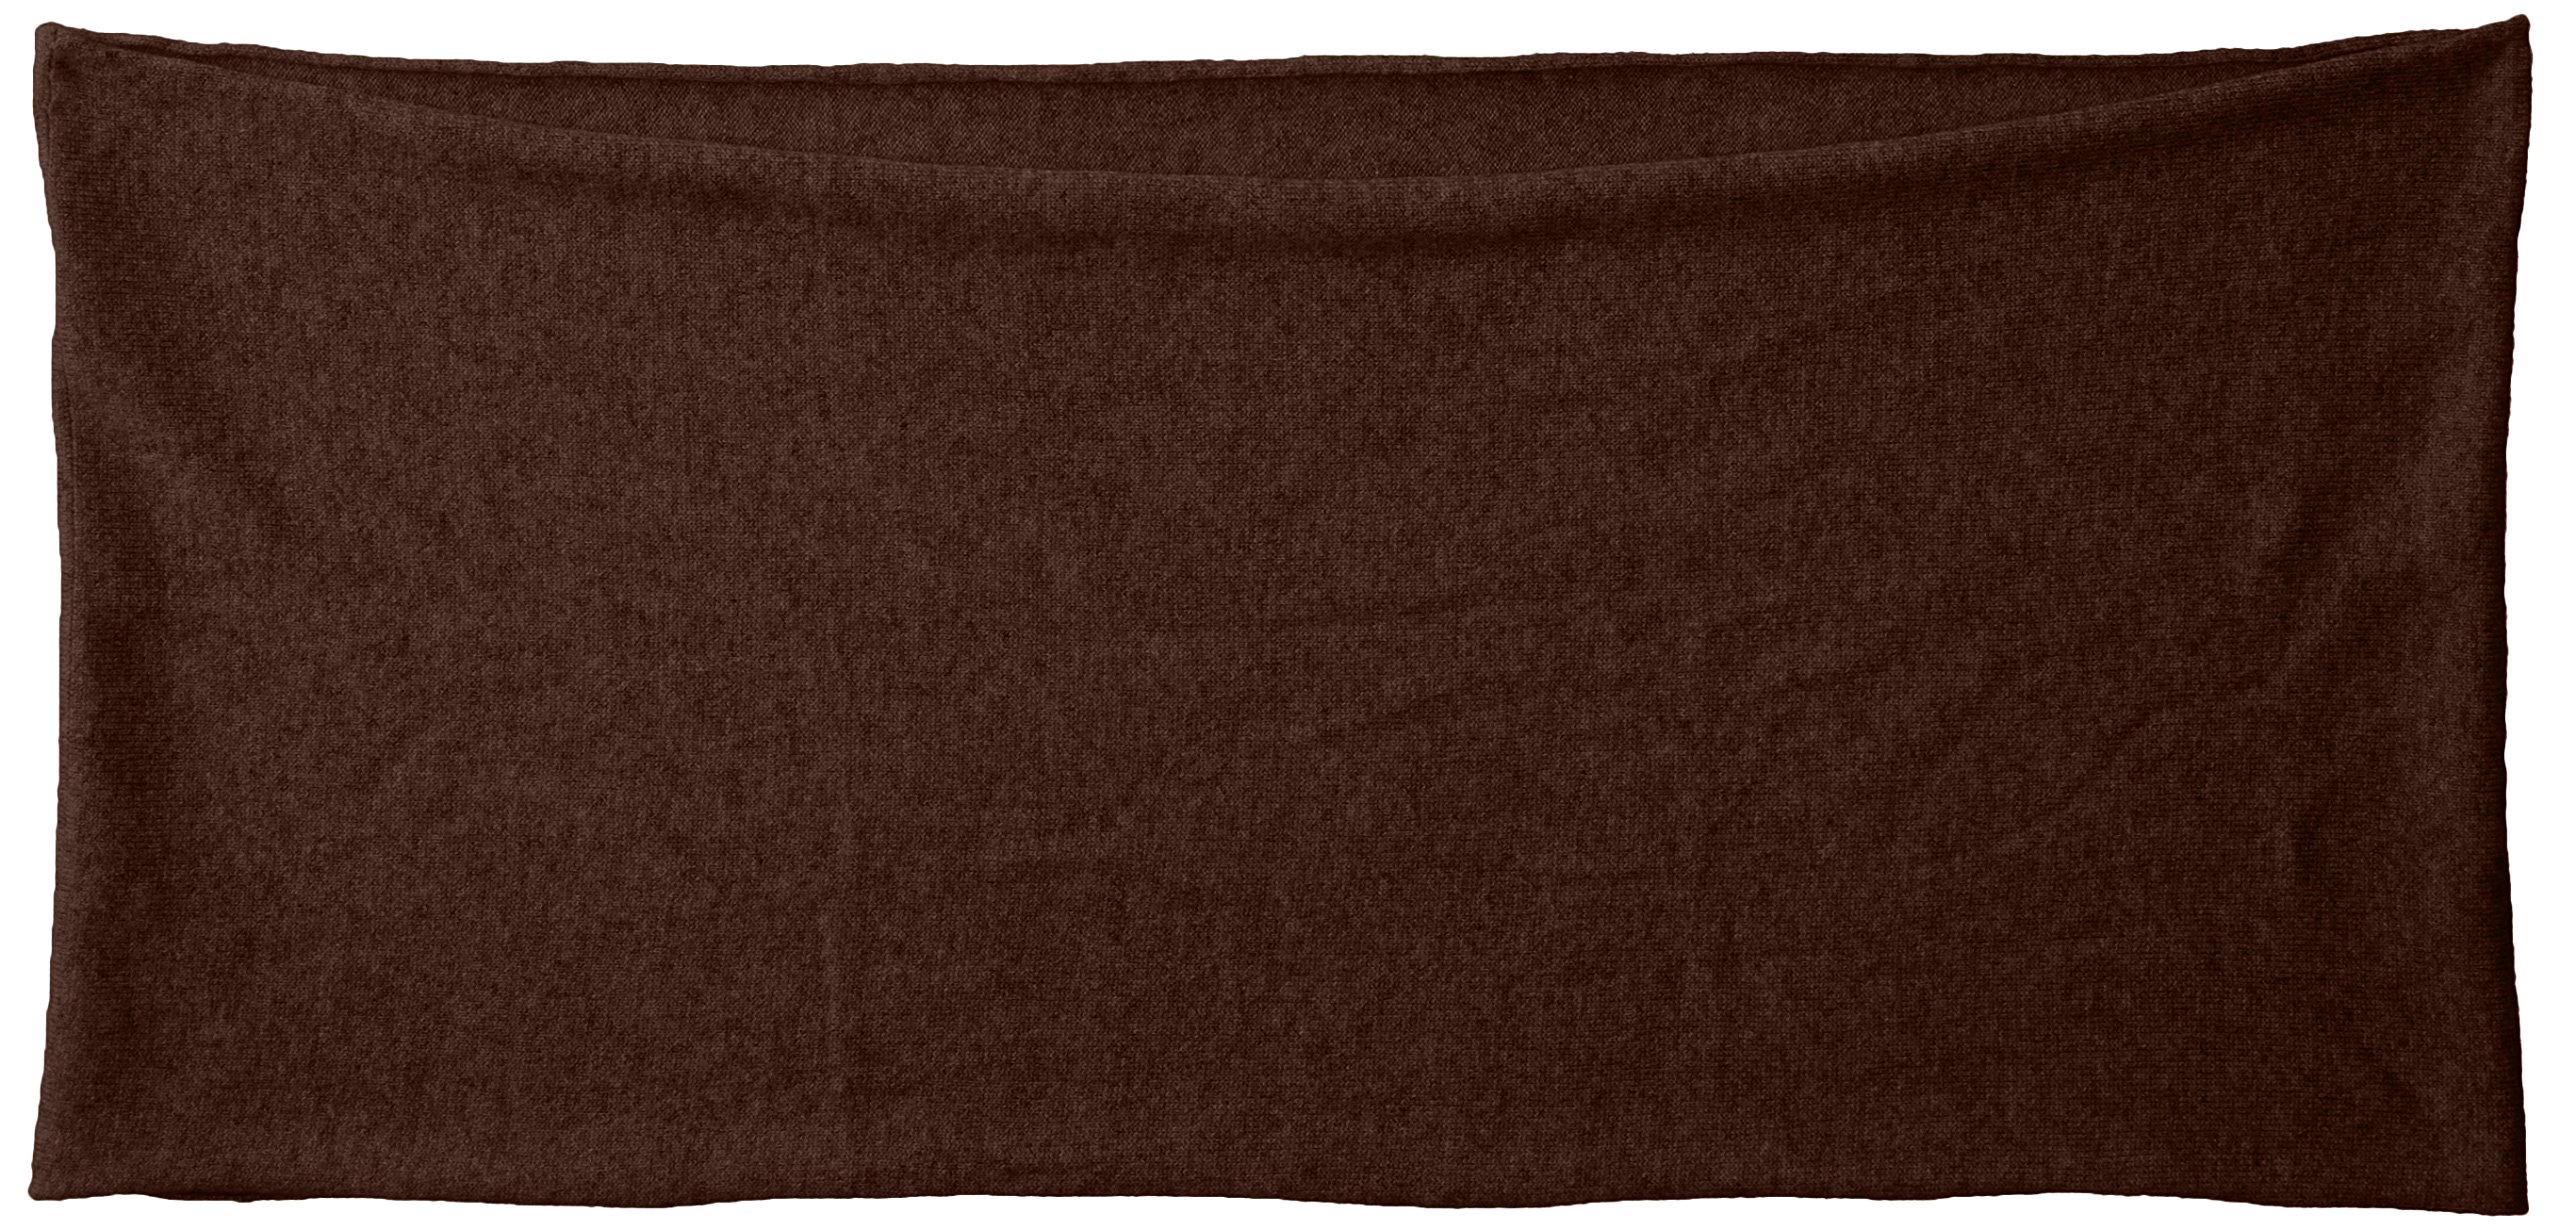 bela.nyc Women's Cashmere Solid Infinity Scarf, Chocolate Heather, One Size by bela.nyc (Image #2)